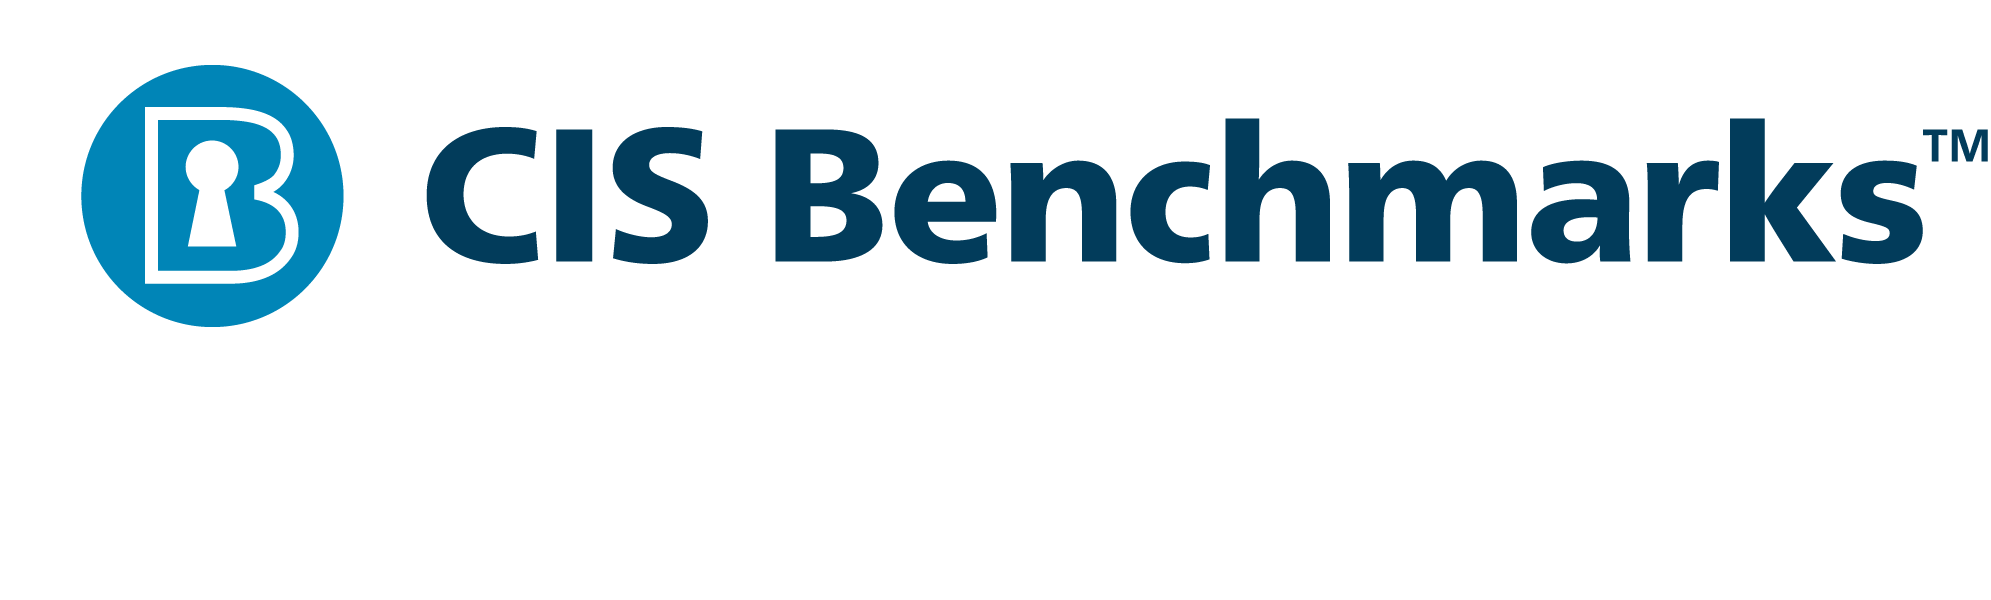 CIS Benchmarks Logo